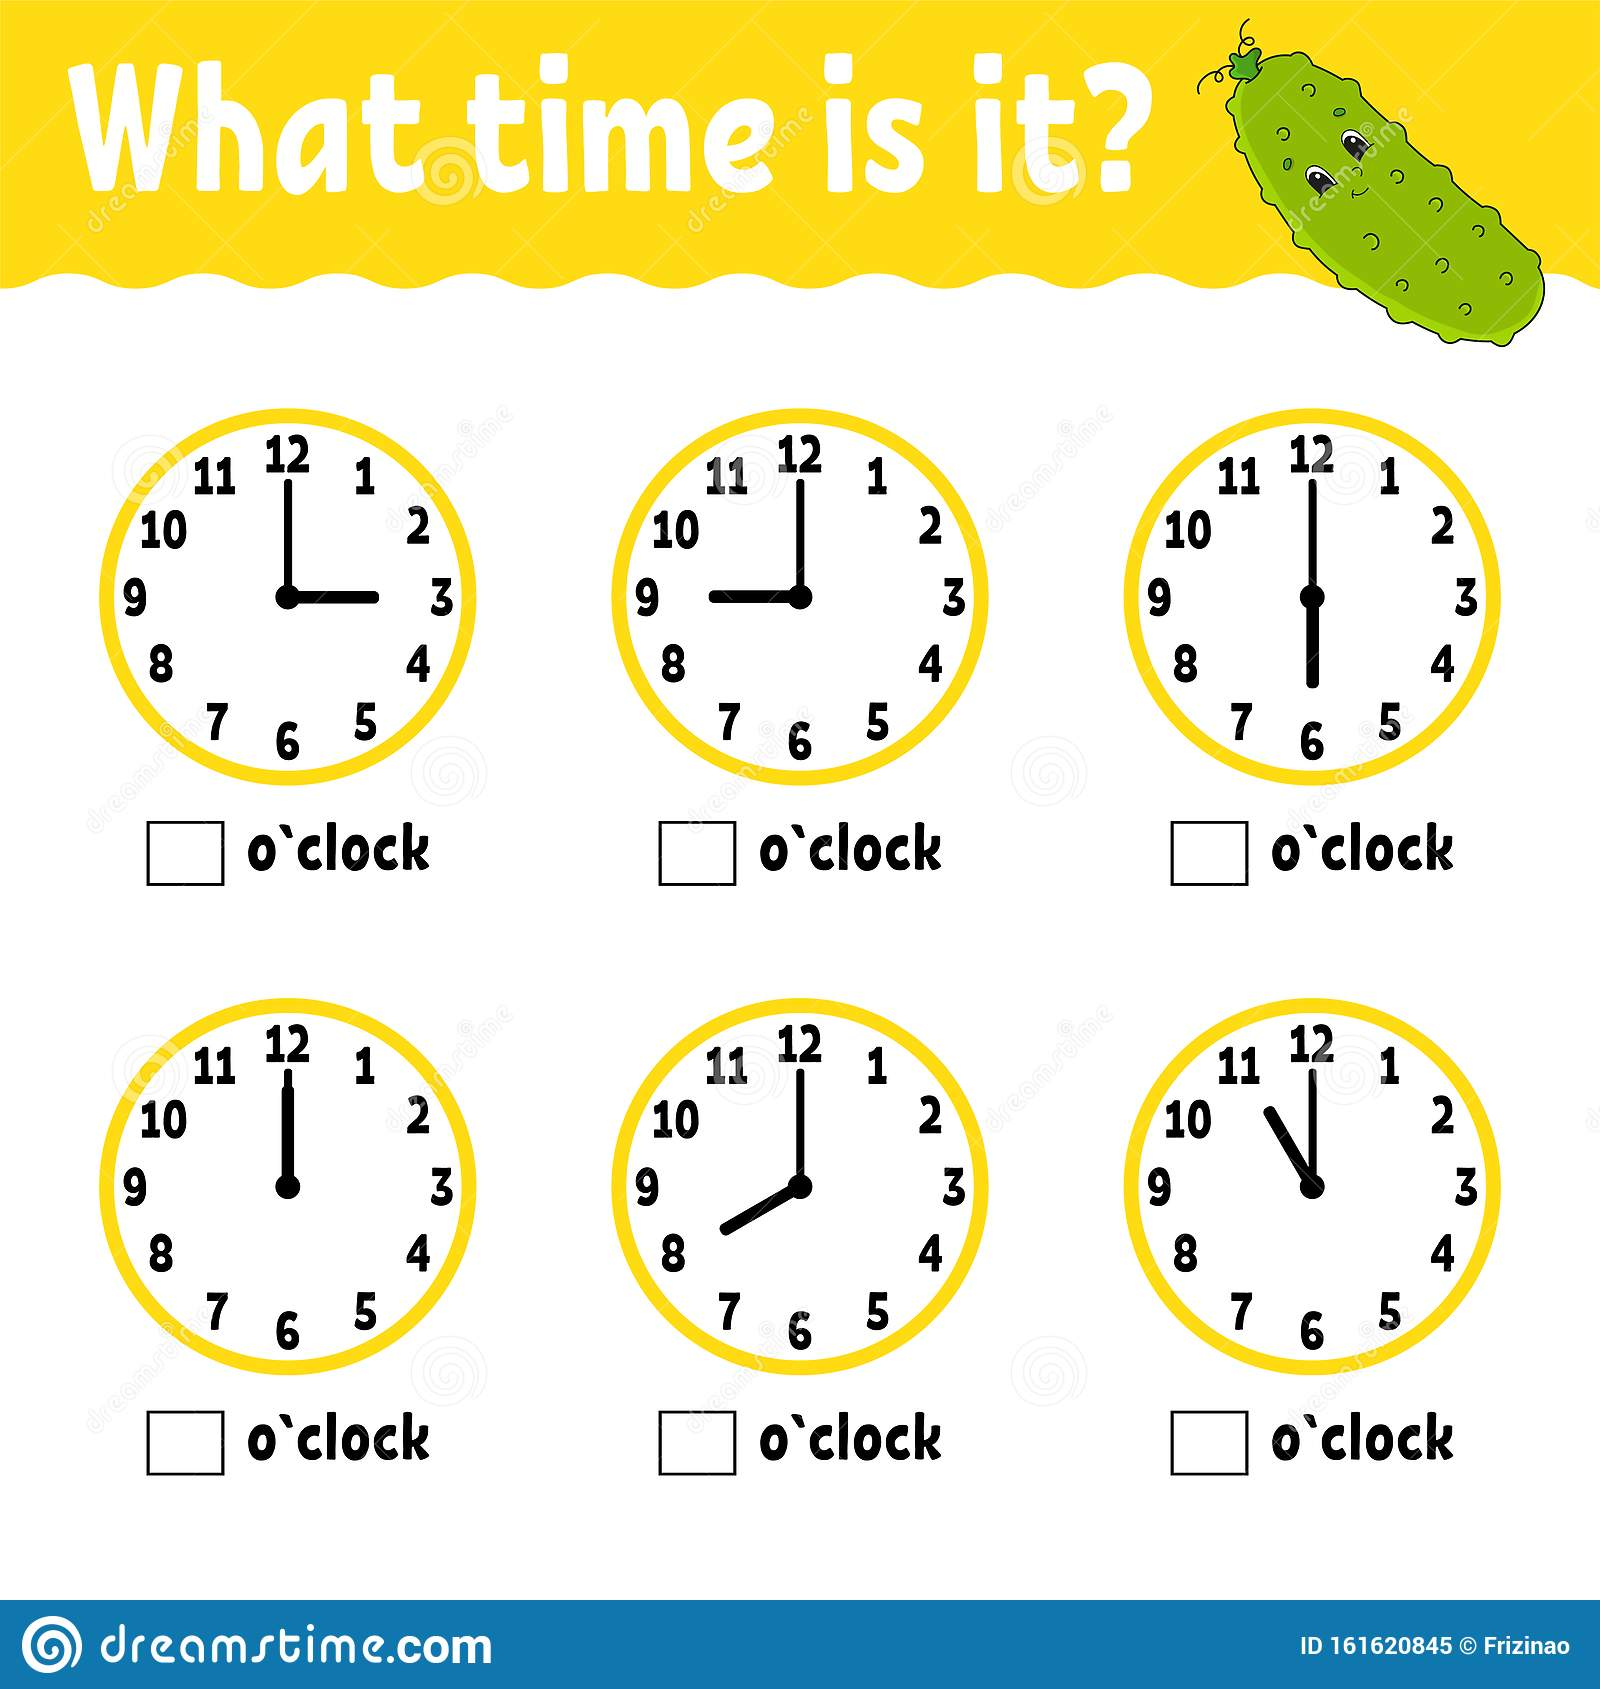 hight resolution of Learning Time On The Clock. Educational Activity Worksheet For Kids And  Toddlers. Game For Children. Simple Flat Isolated Vector Stock Vector -  Illustration of pastime